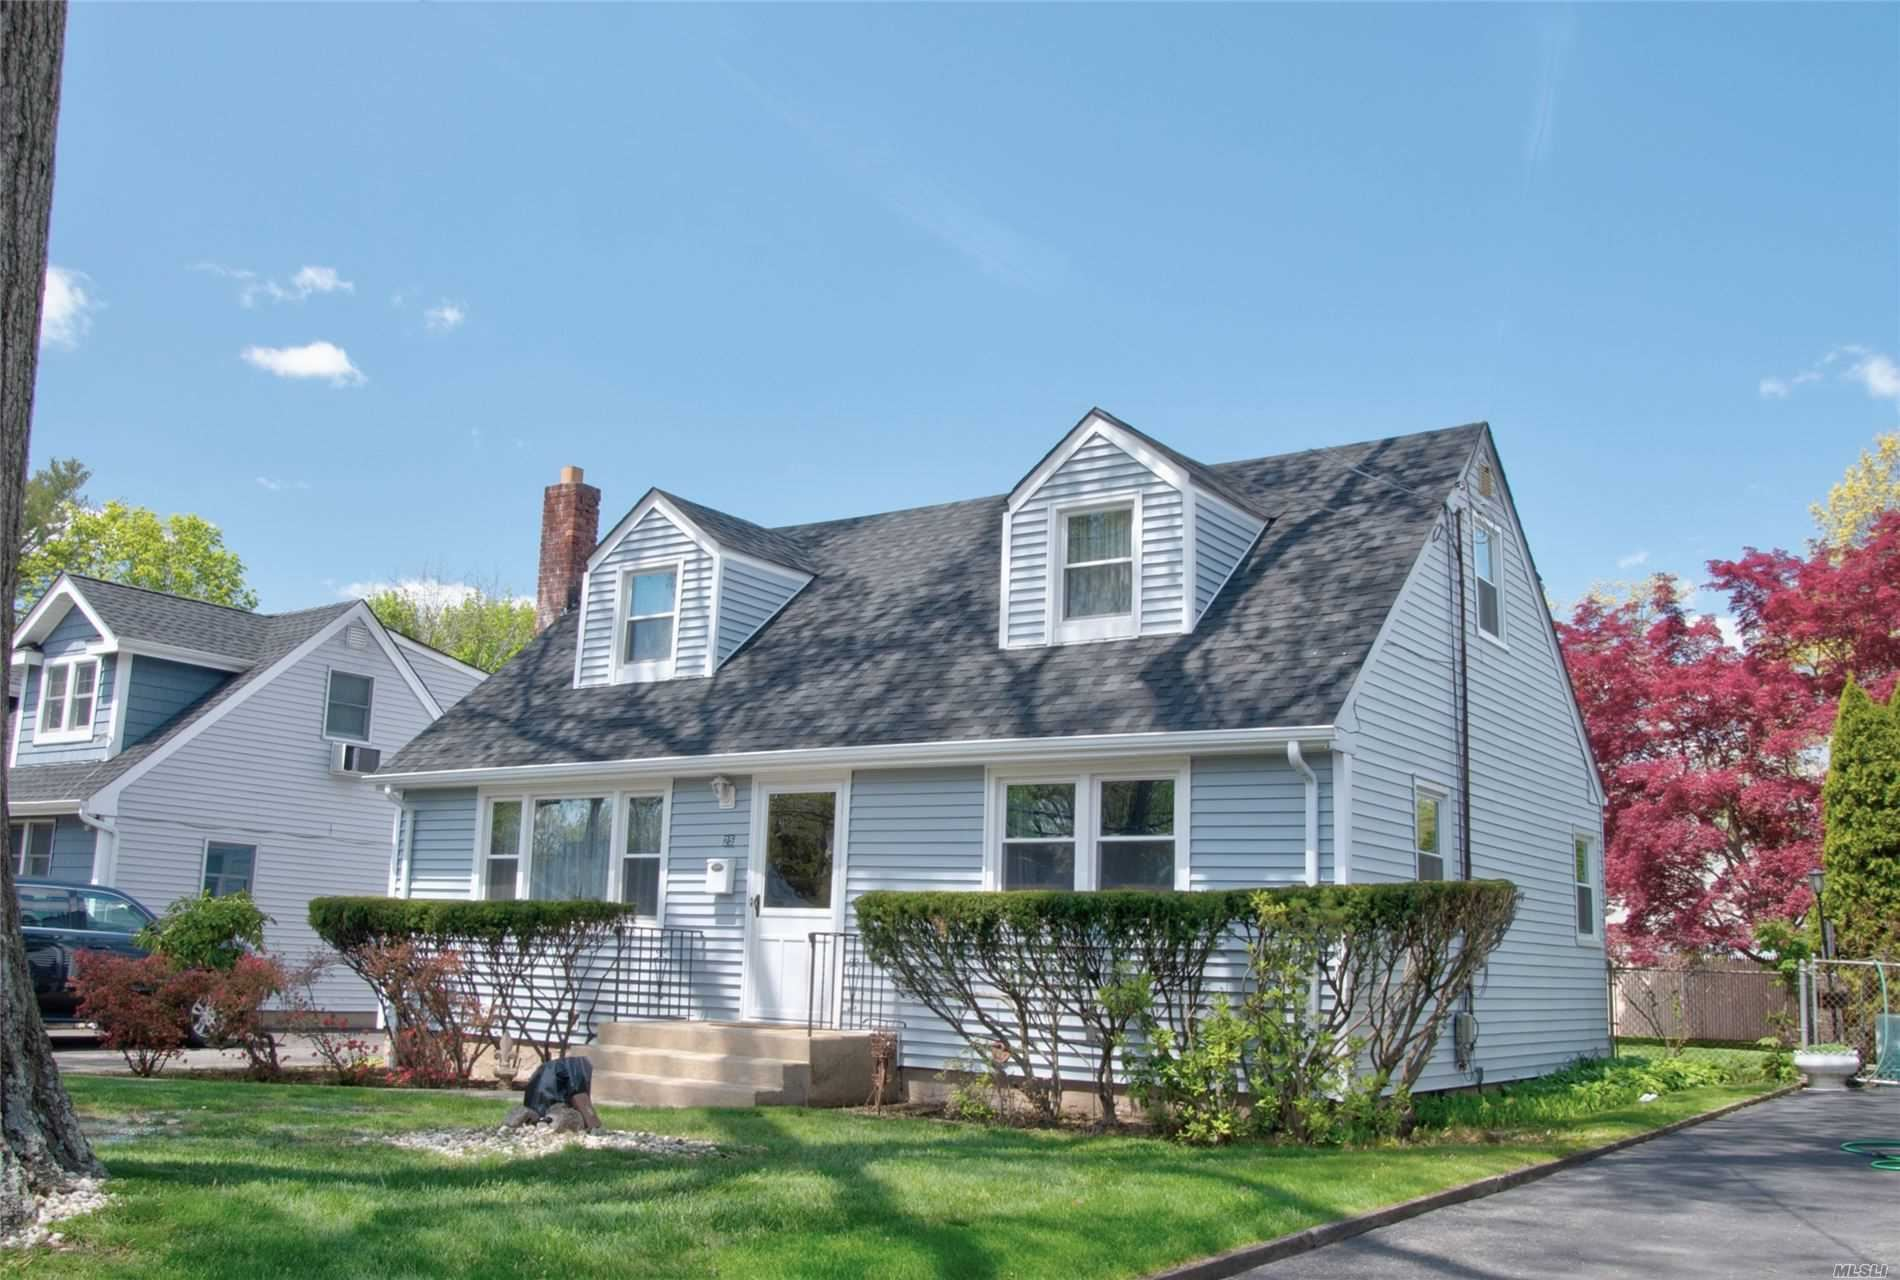 25 E 20th St, Huntington Station, NY 11746 - MLS#: 3214242